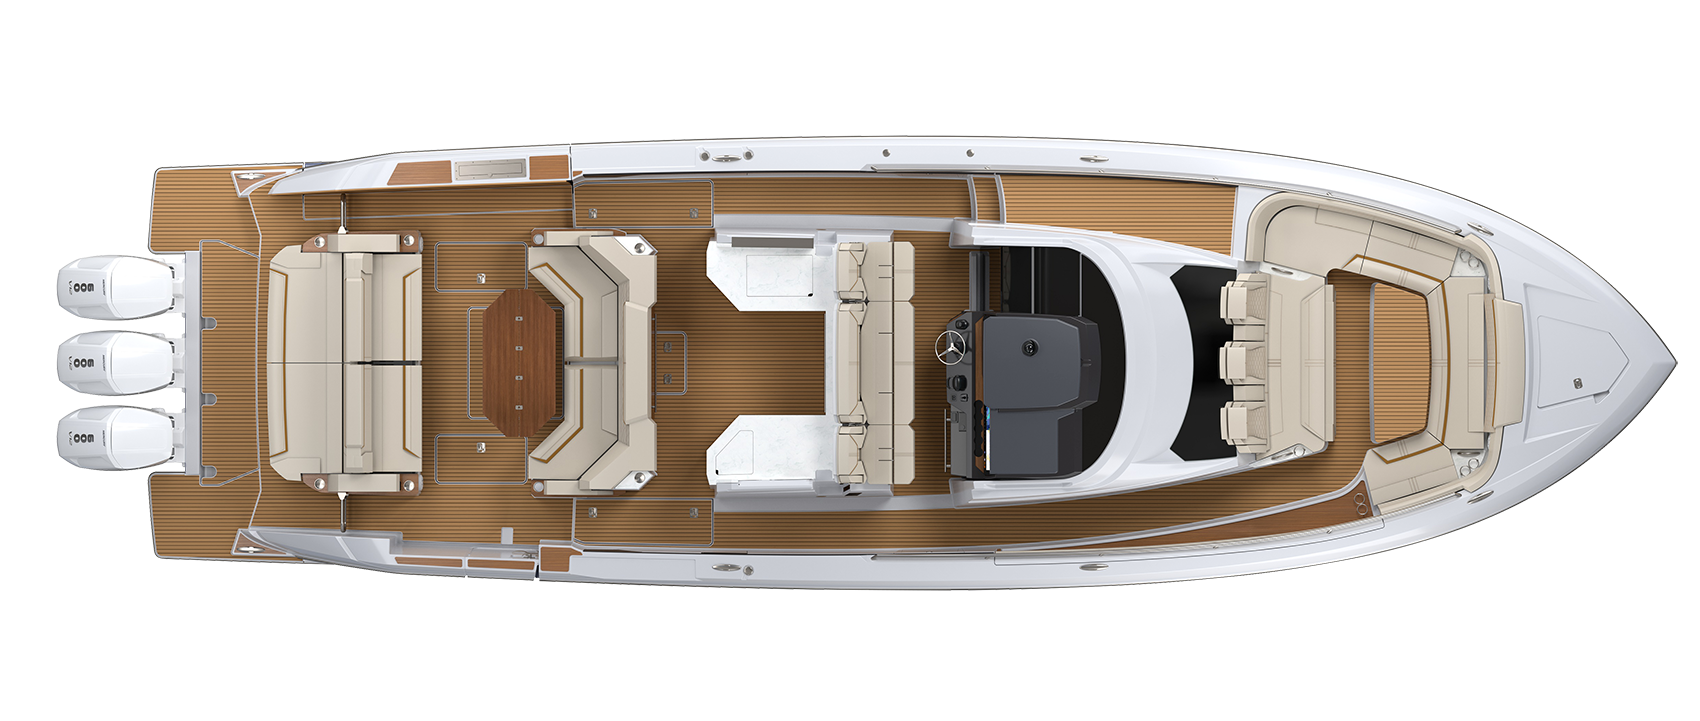 38 LS Exterior Plan View Without Hardtop